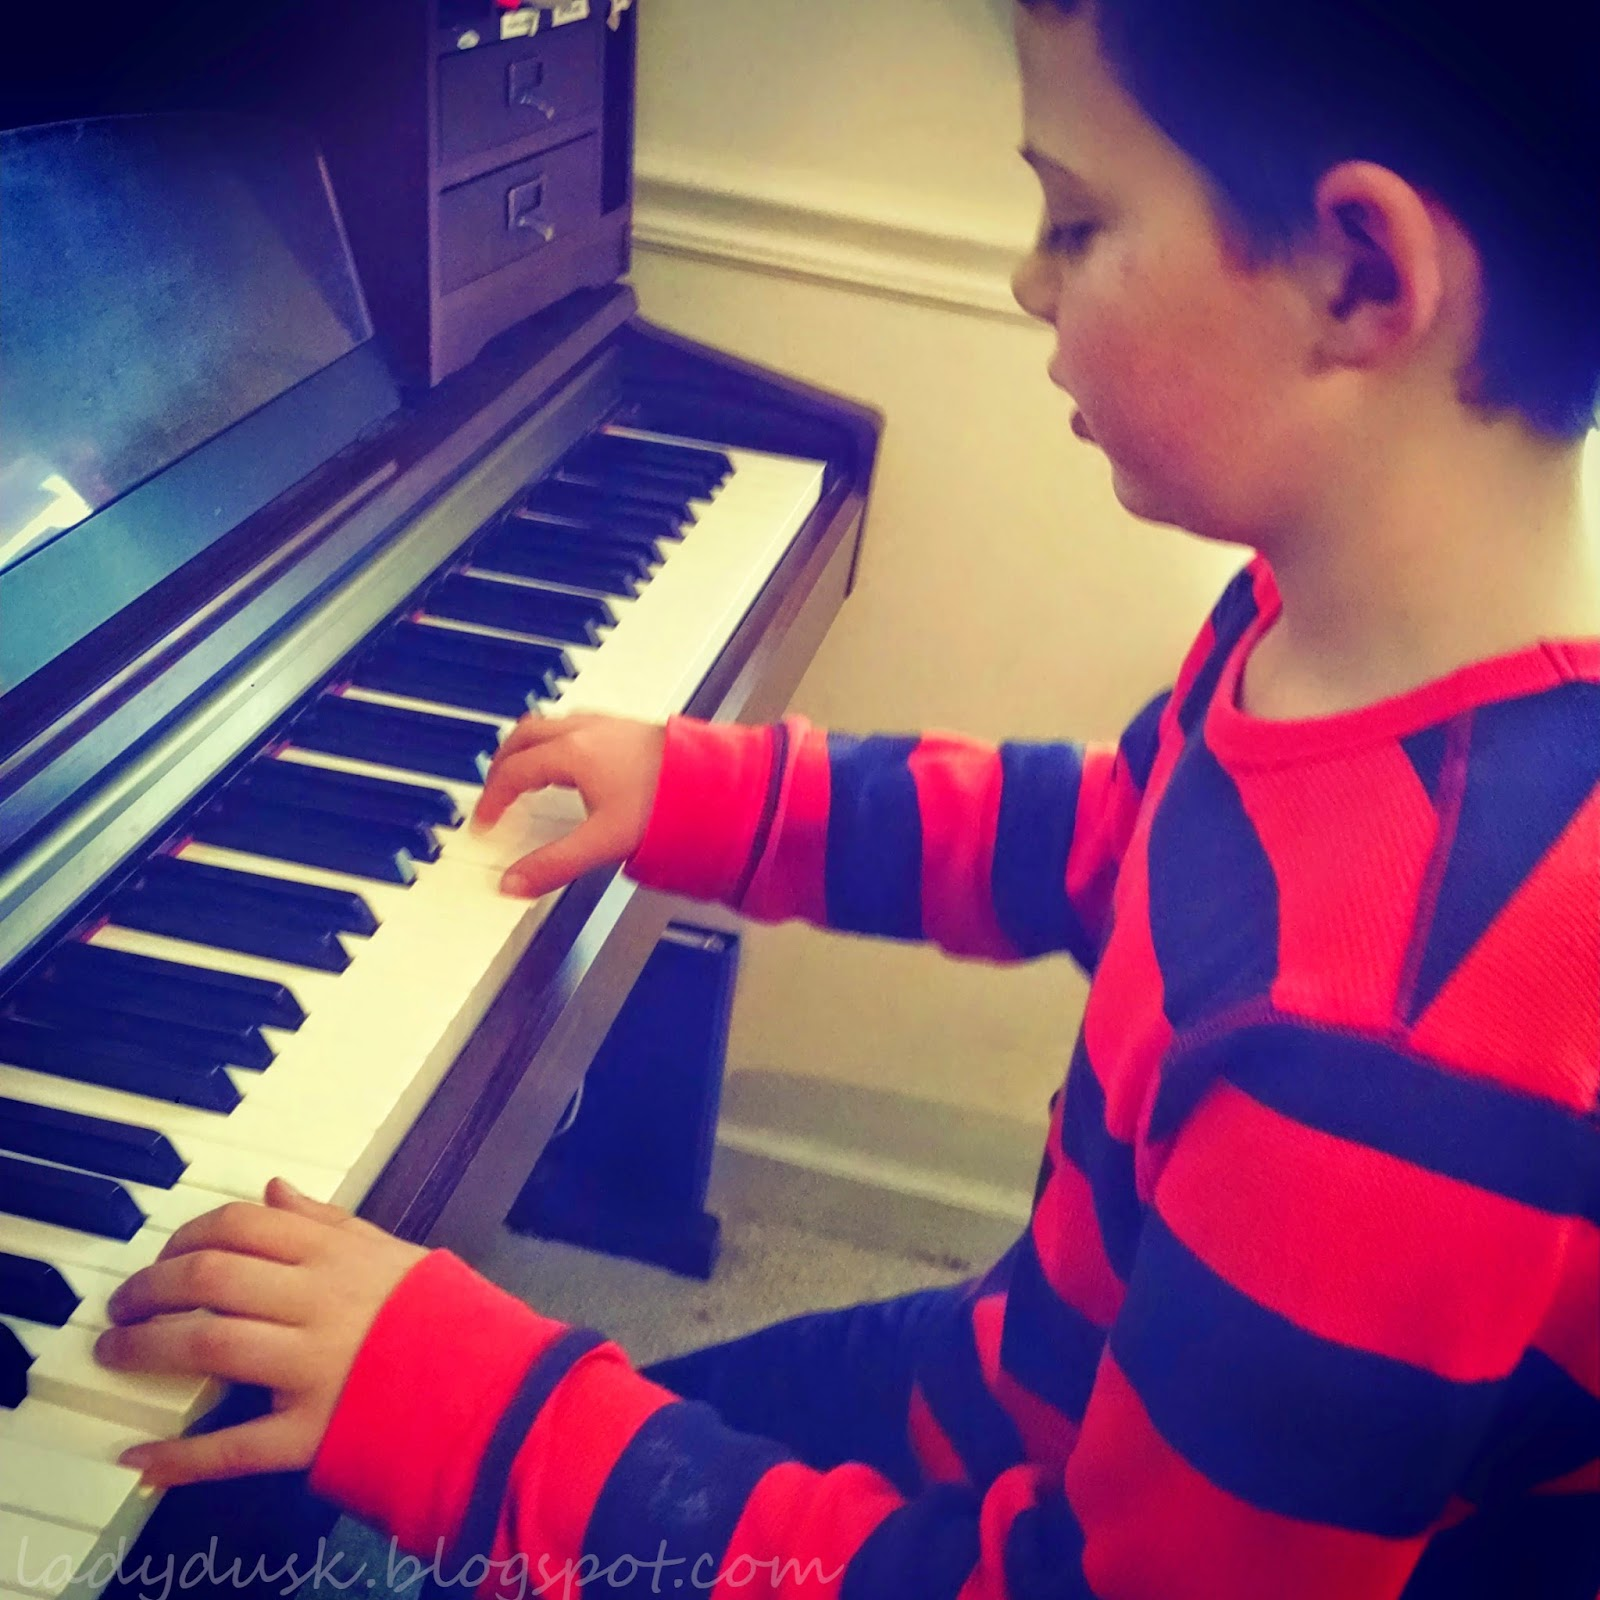 Wordless Wednesday: Messing around at the Piano